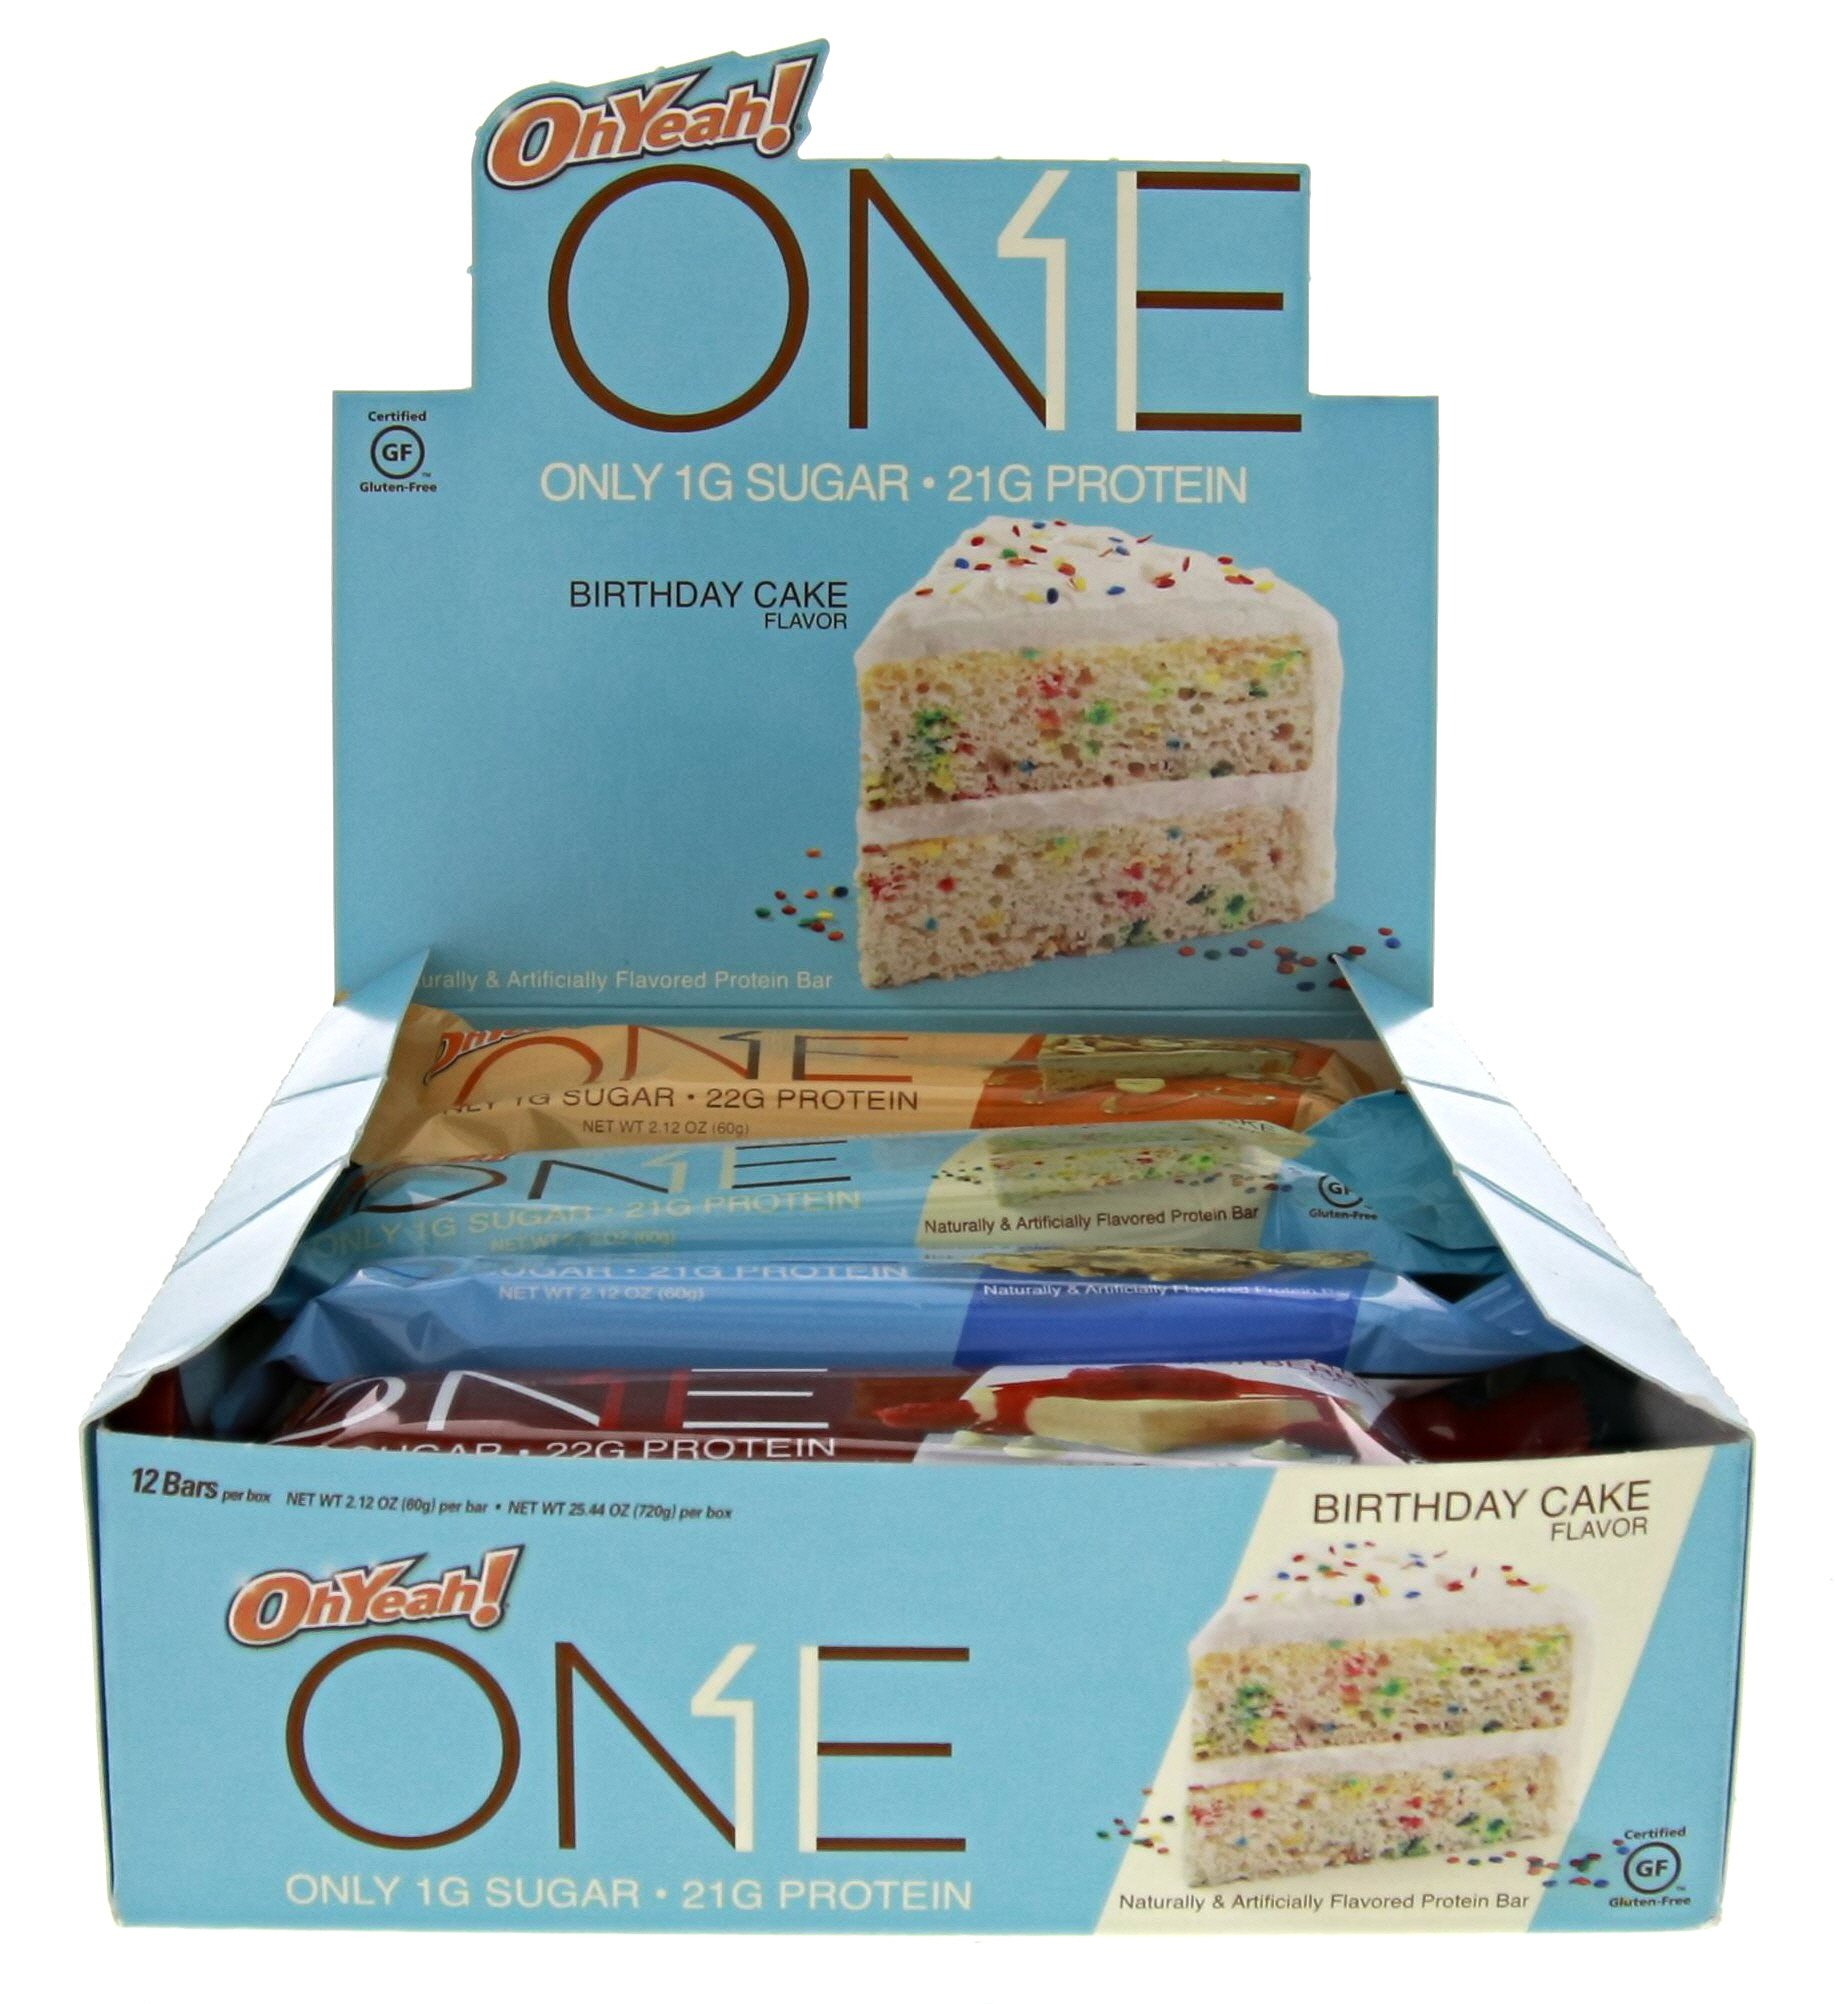 Oh Yeah! ONE Protein Bar Variety Pack, 12 count, Gluten-Free Protein Bars with High Protein (20g) and Low Sugar (1g), Guilt Free Snacking for Healthy Diets by ONE